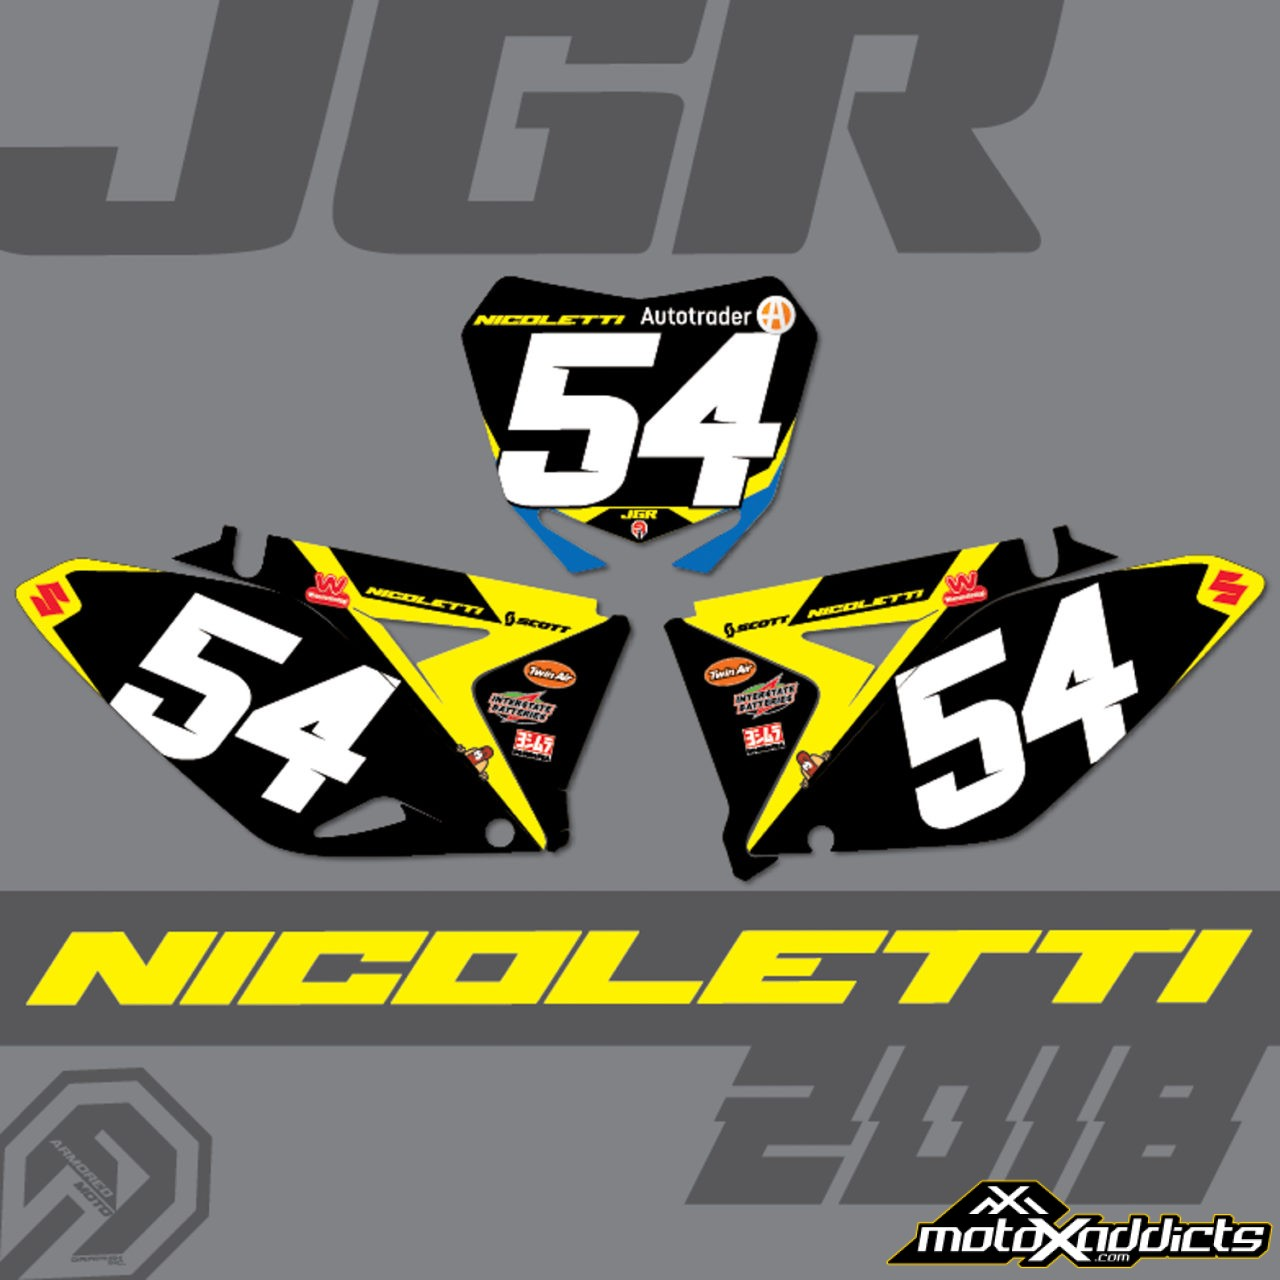 Phil Nicoletti Re-Signed by JGRMX / Suzuki